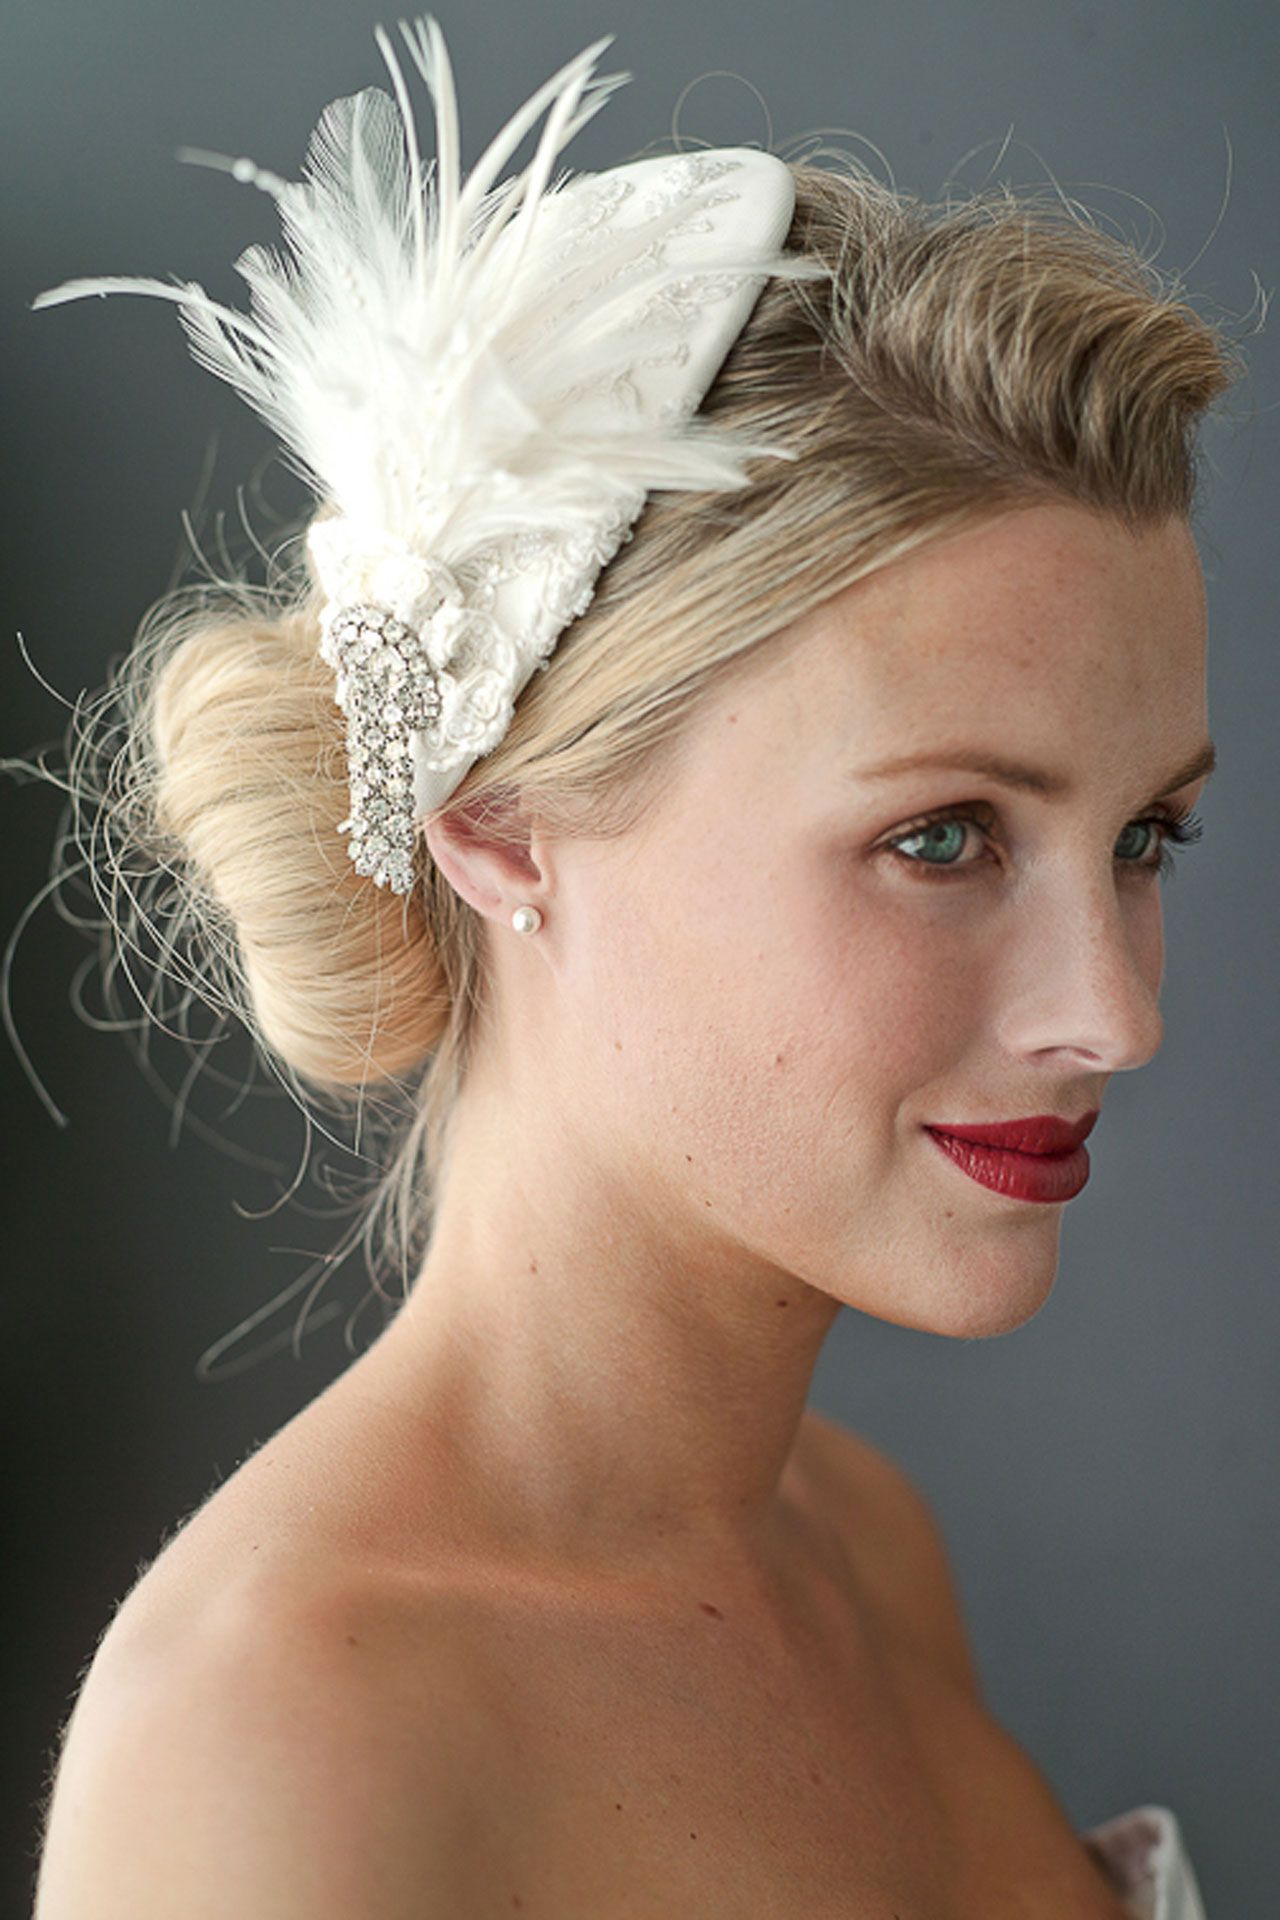 wedding hair accessories - bridal accessories (bridesmagazine.co.uk